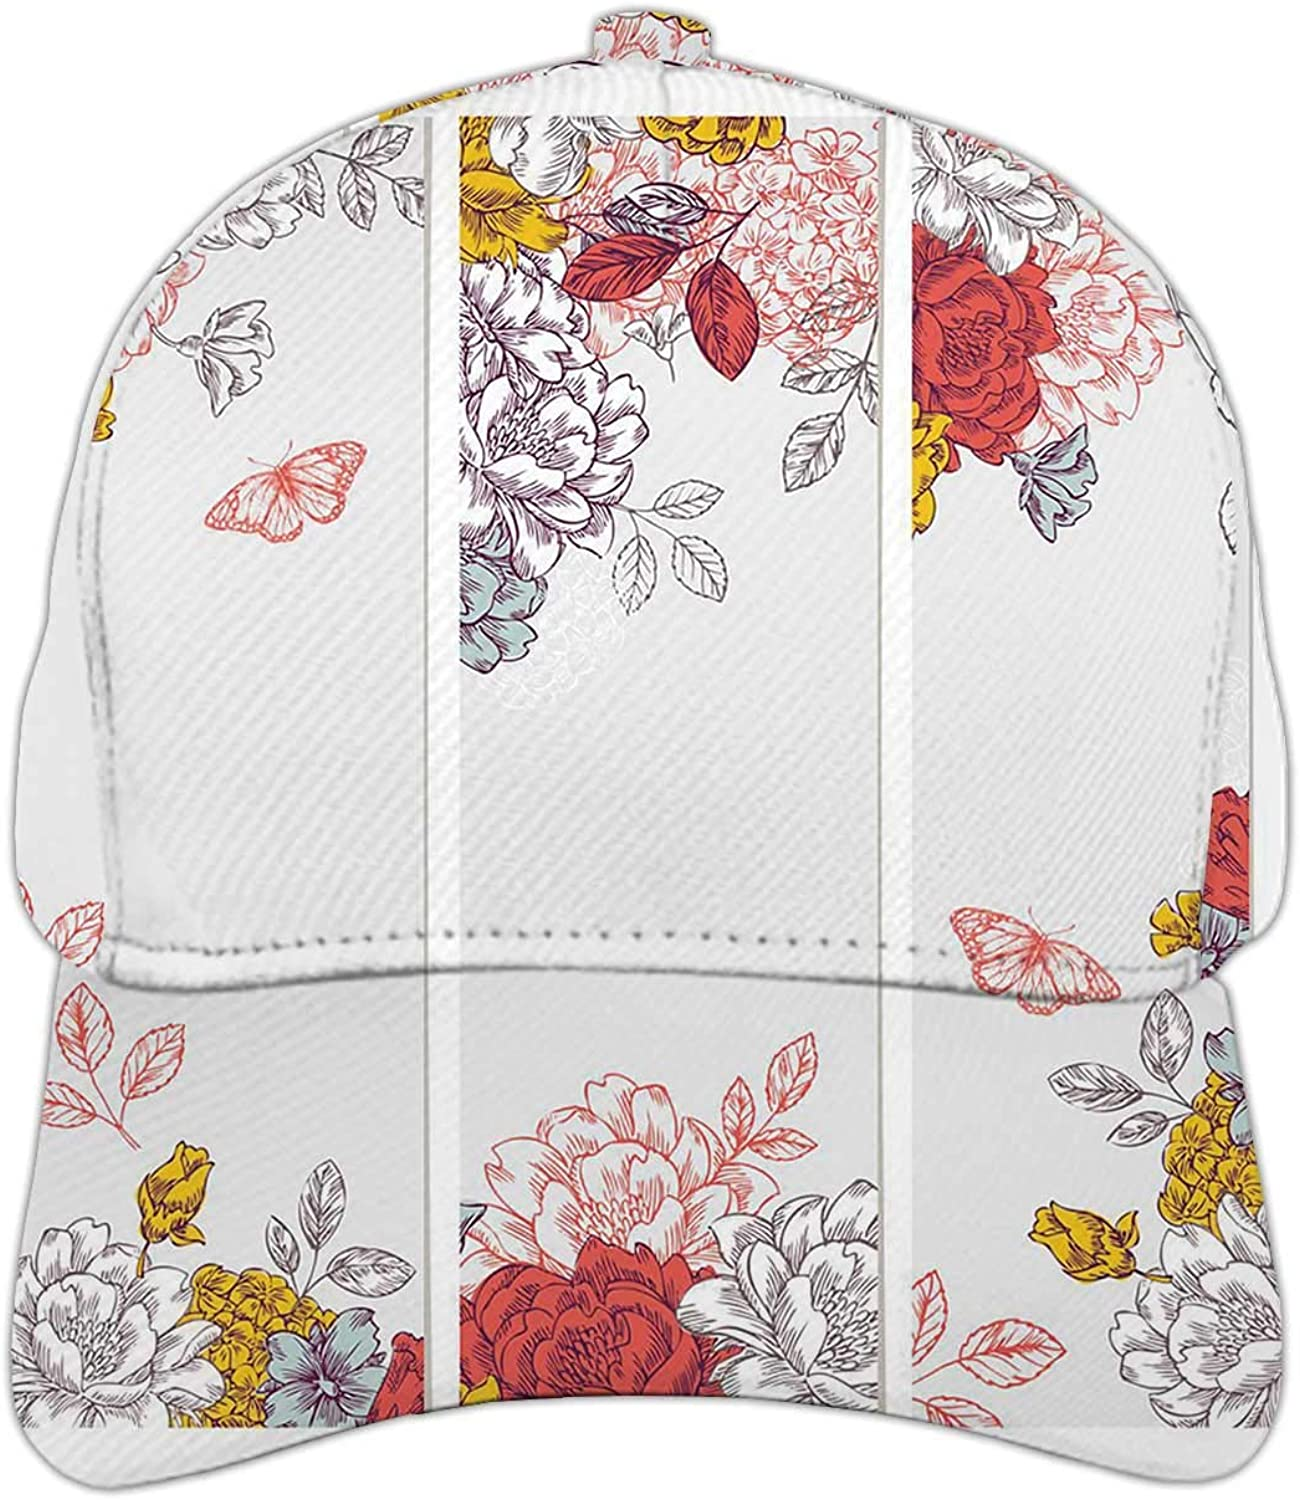 Peony Flower Banner Collection,Hat for Man and Women,Adjustable Snapback Hat for Men Women